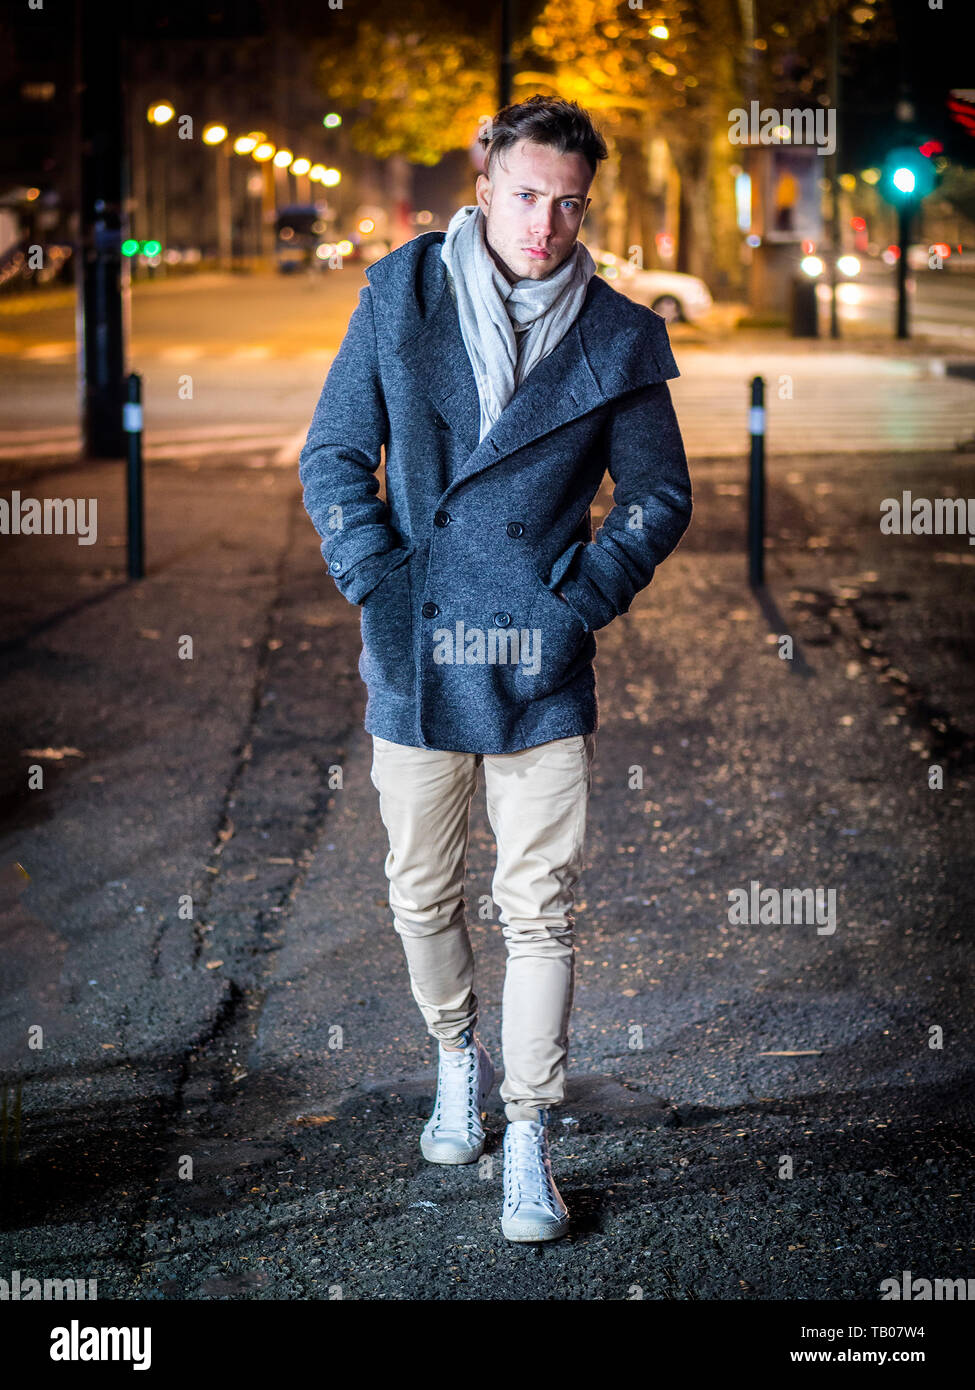 Handsome trendy young man, standing on a sidewalk at night Stock Photo